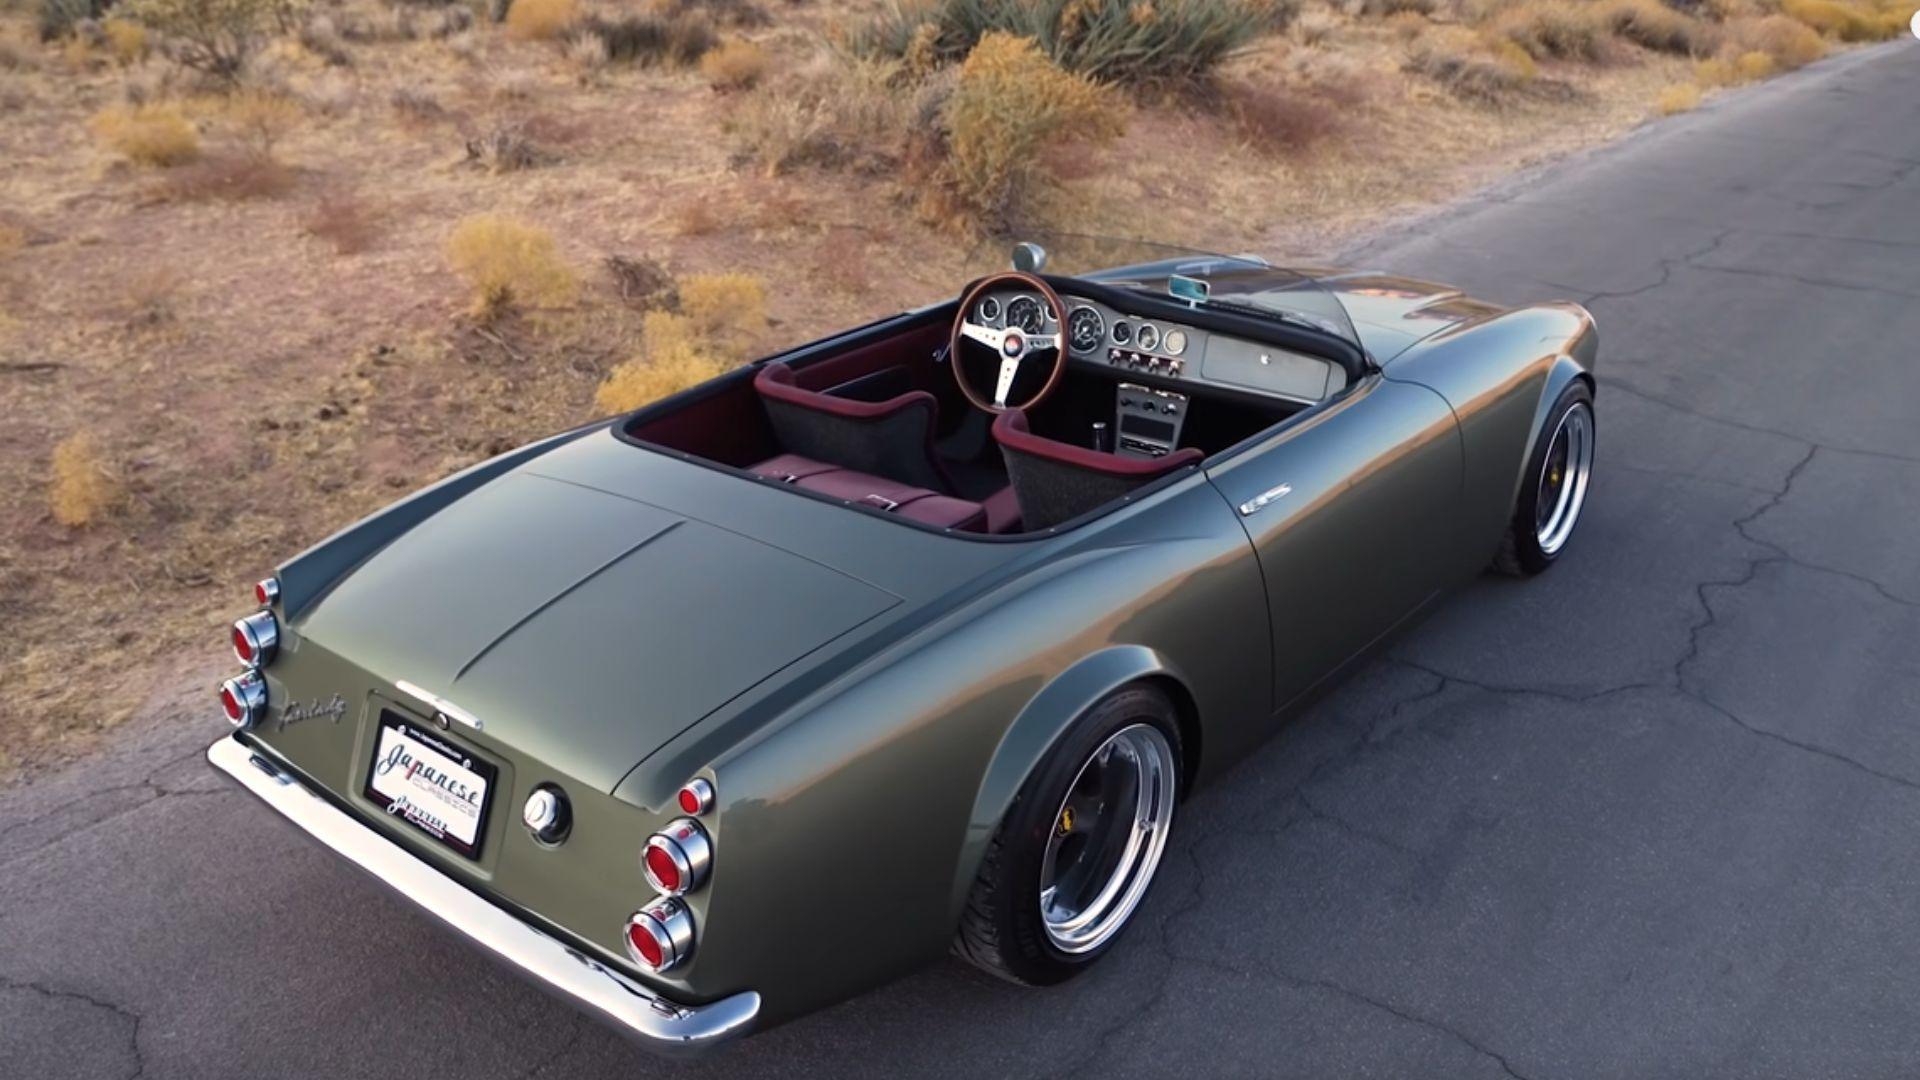 Chopped Datsun 1600 Roadster Rides On The Wild Side